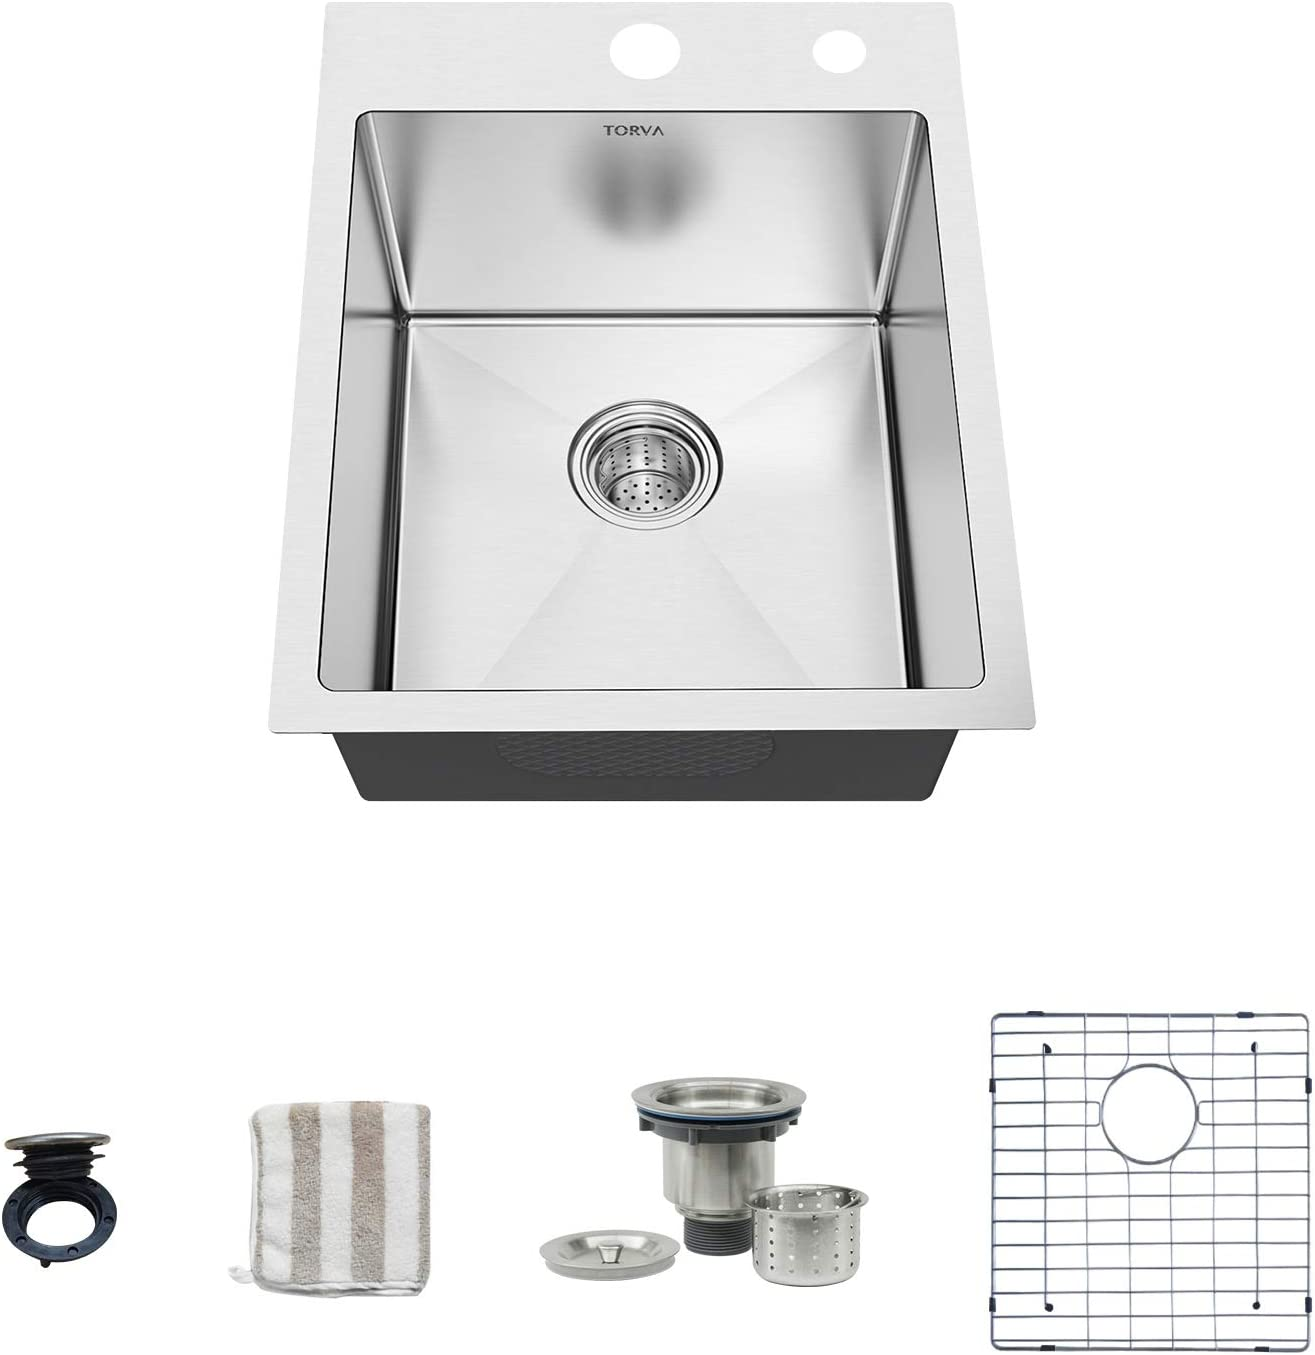 TORVA 15-Inch Drop-in Kitchen Sink, 16 Gauge Stainless Steel Topmount Single Bowl - 10 Inches Deep Bar/Prep Basin